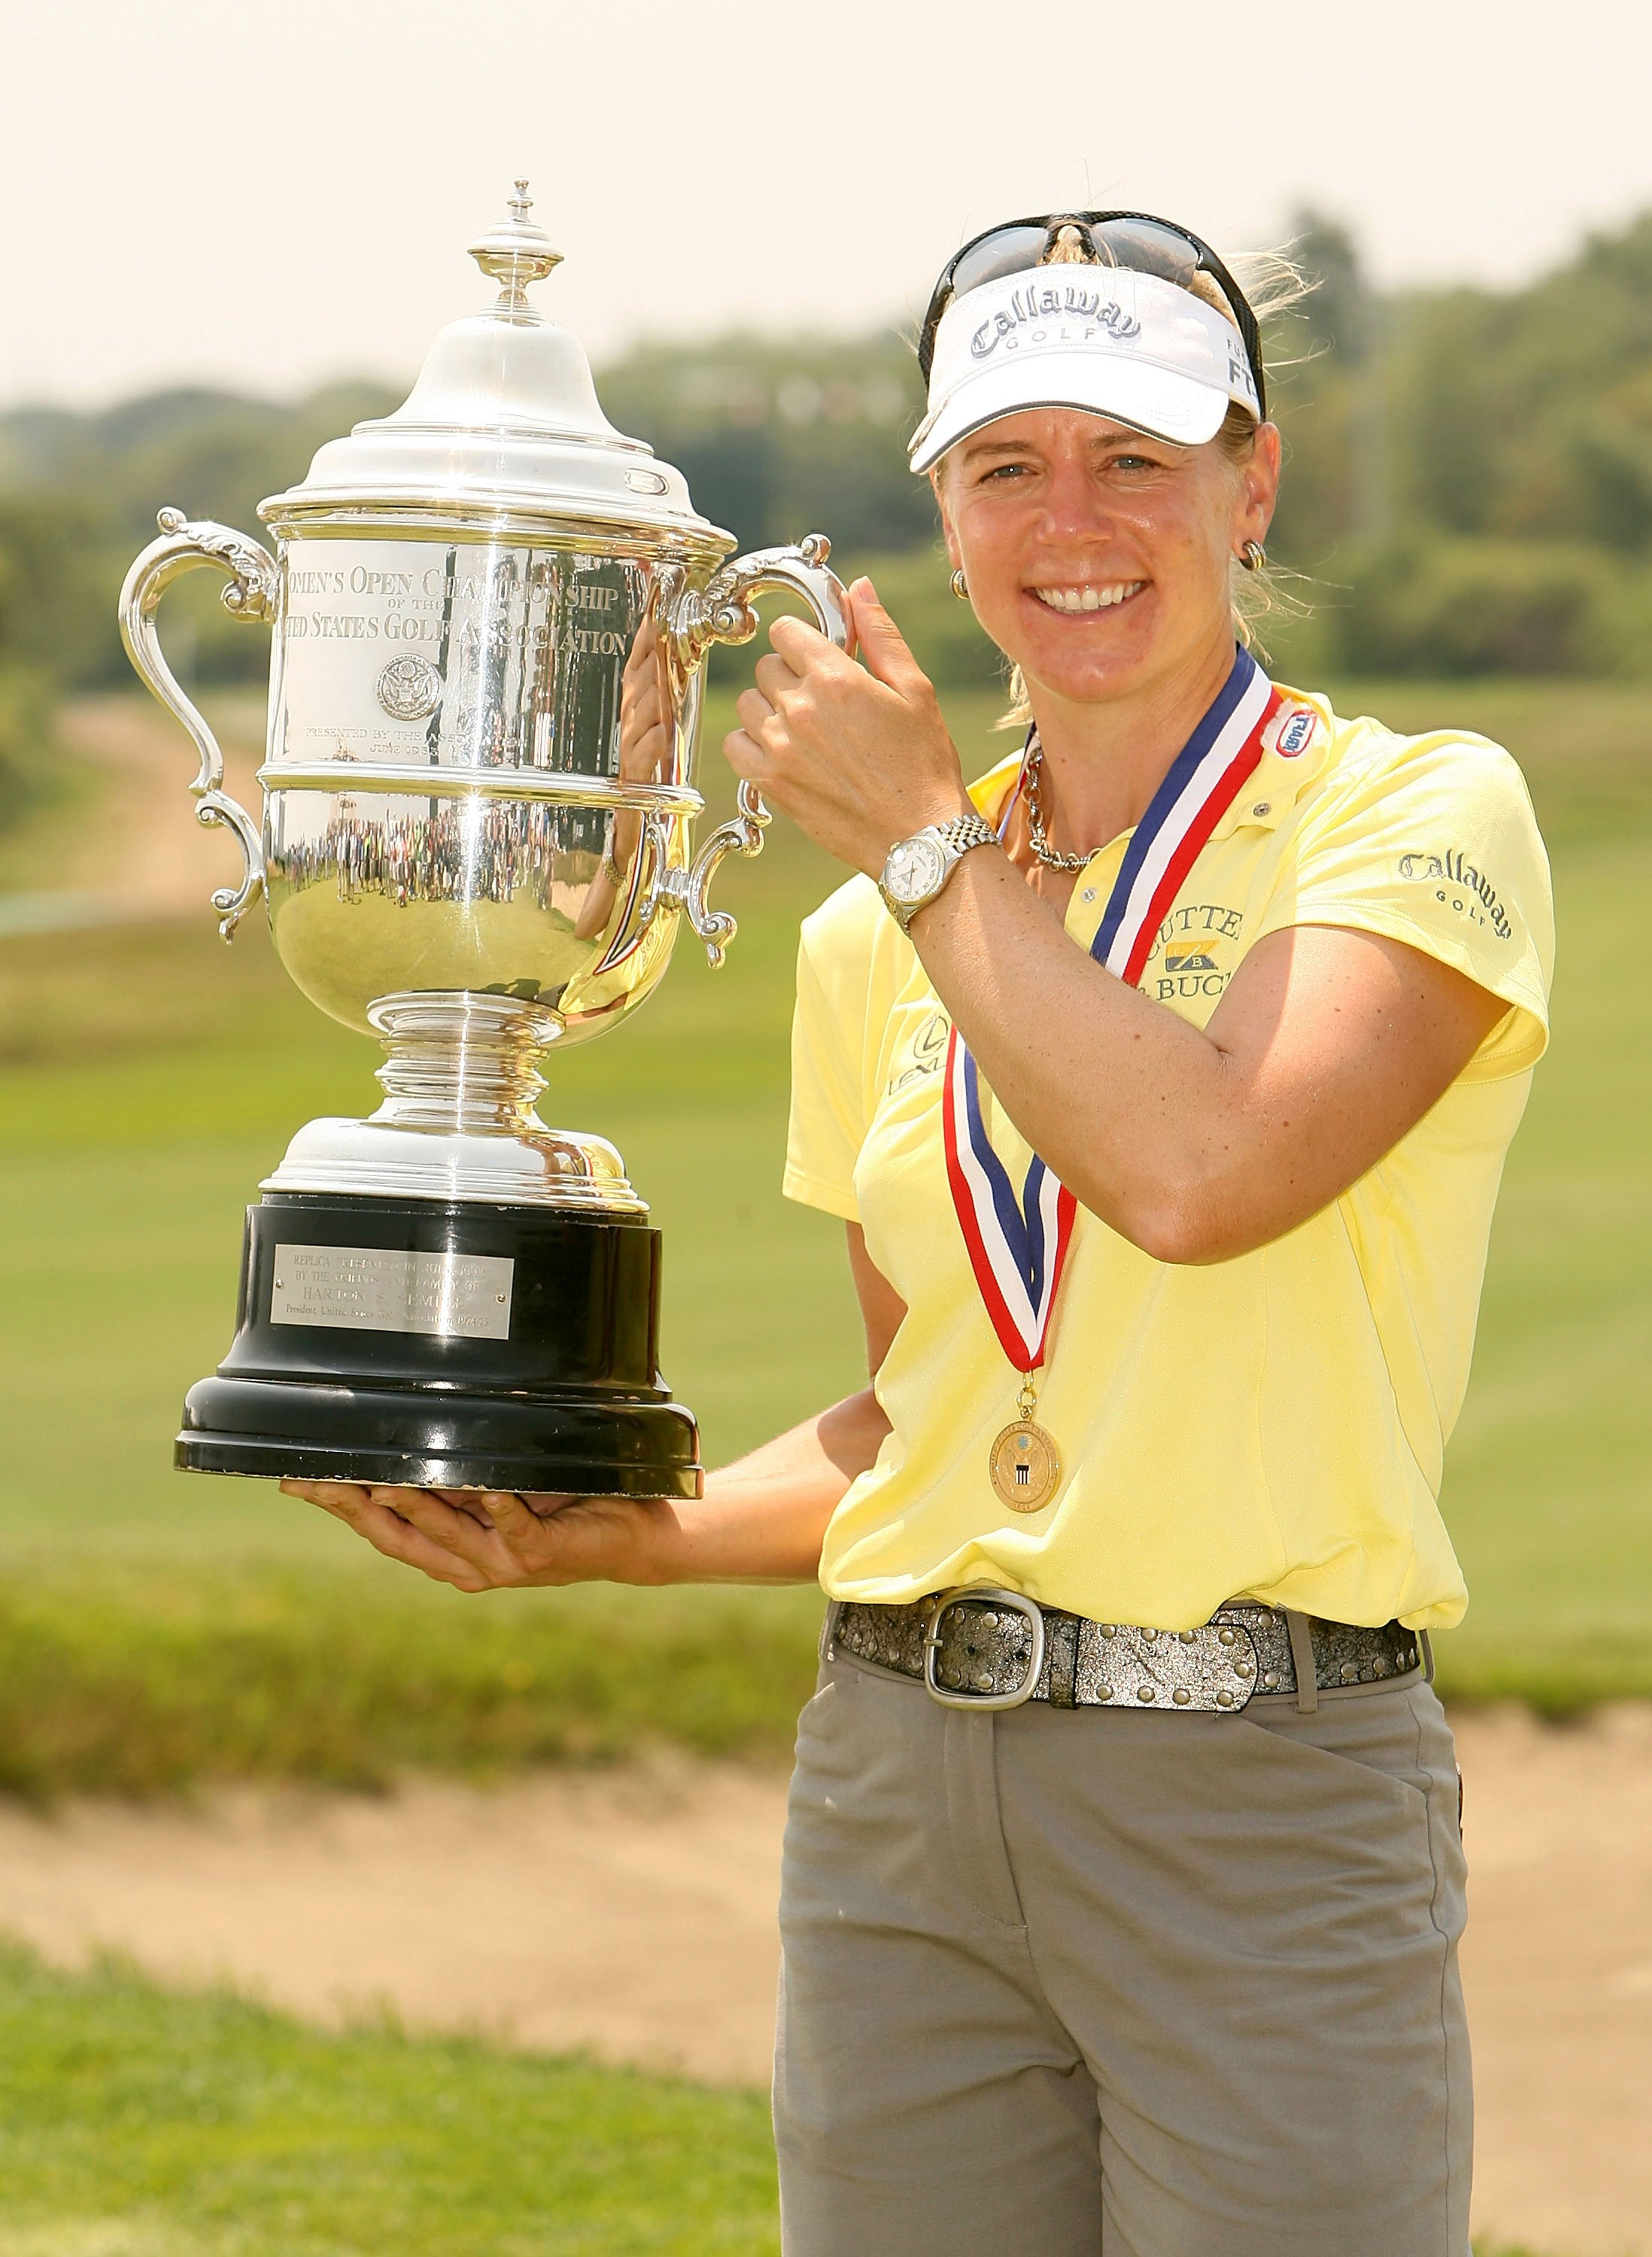 NEWPORT, RI - JULY 3:  Annika Sorenstam of Sweden holds the US Open Championship trophy after the playoff of the 2006 U.S. Women's Open on July 3, 2006 at Newport Country Club in Newport, Rhode Island.  (Photo by Nick Laham/Getty Images)